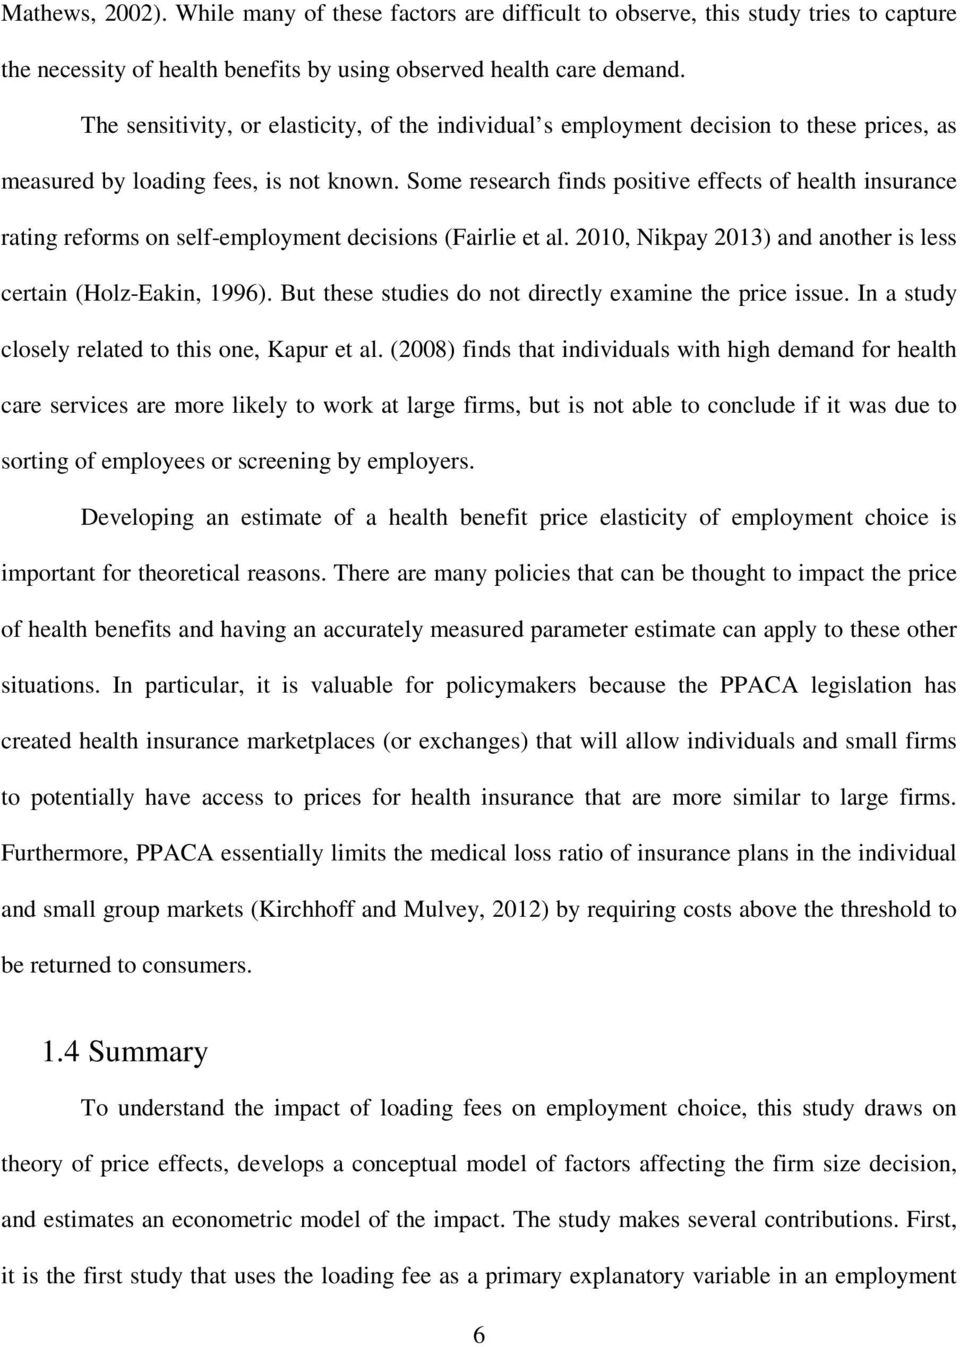 Some research finds positive effects of health insurance rating reforms on self-employment decisions (Fairlie et al. 2010, Nikpay 2013) and another is less certain (Holz-Eakin, 1996).